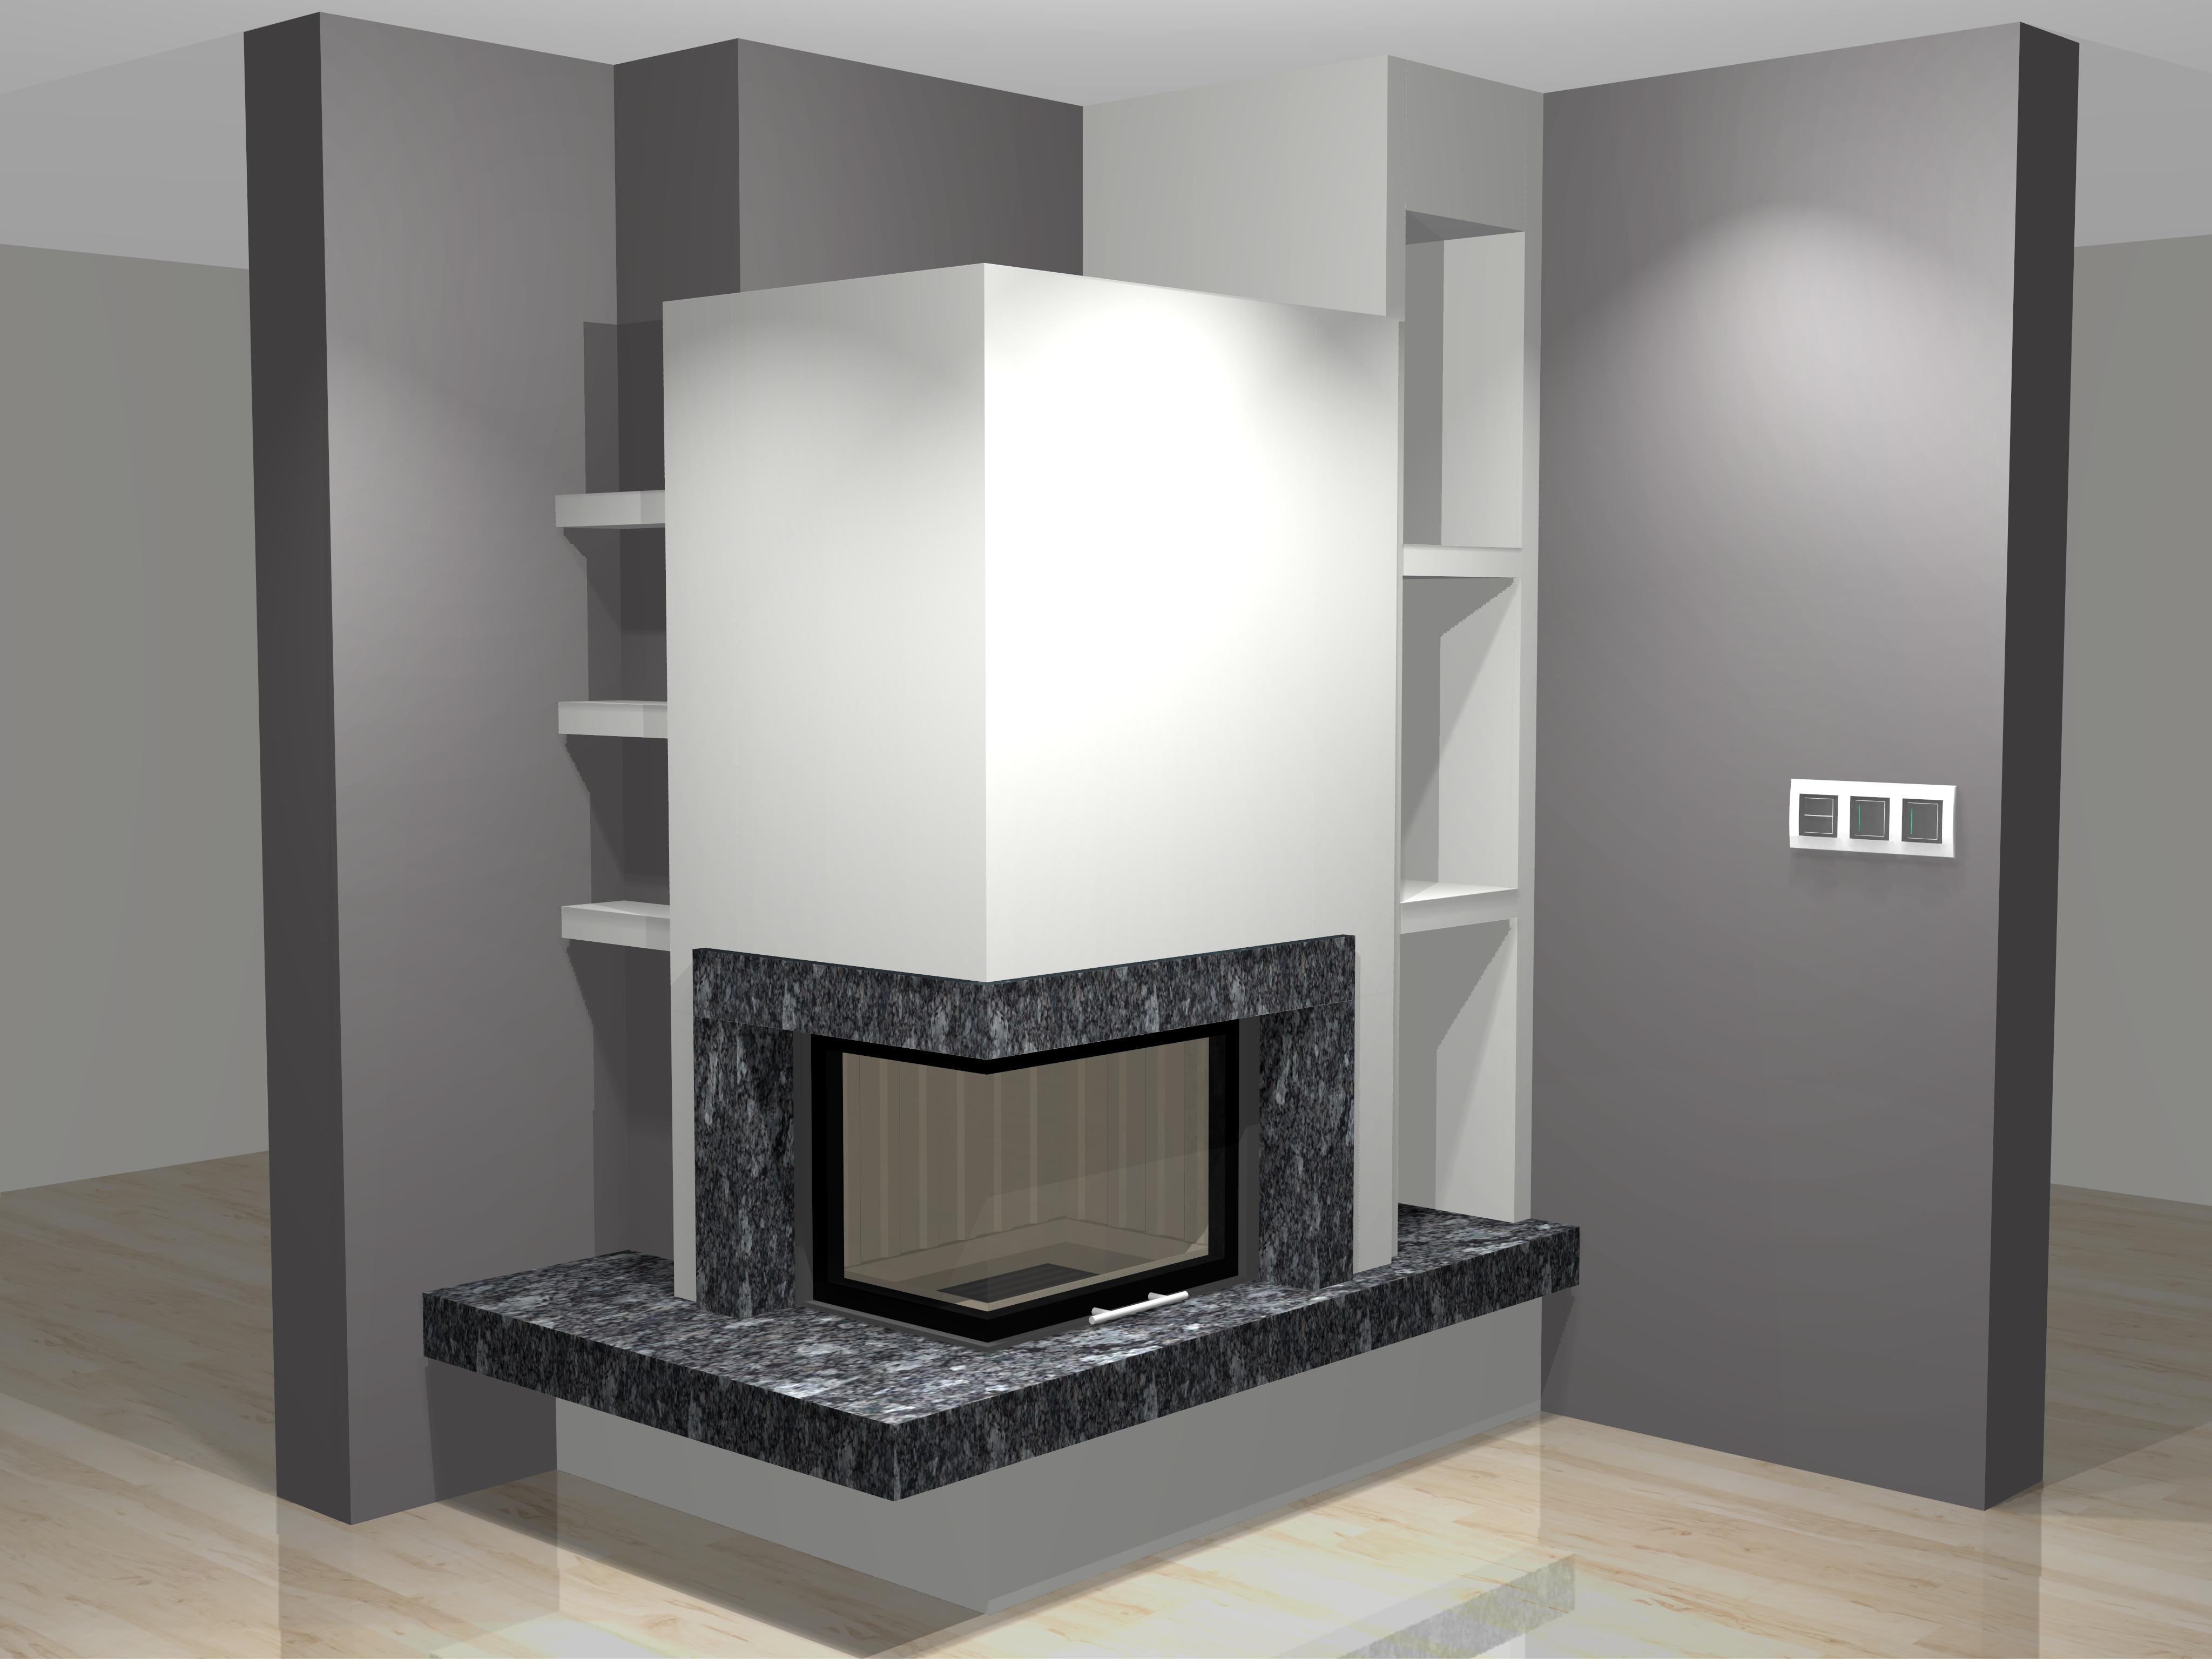 eckkamin modern a 41 1 mit spartherm mit montage www. Black Bedroom Furniture Sets. Home Design Ideas